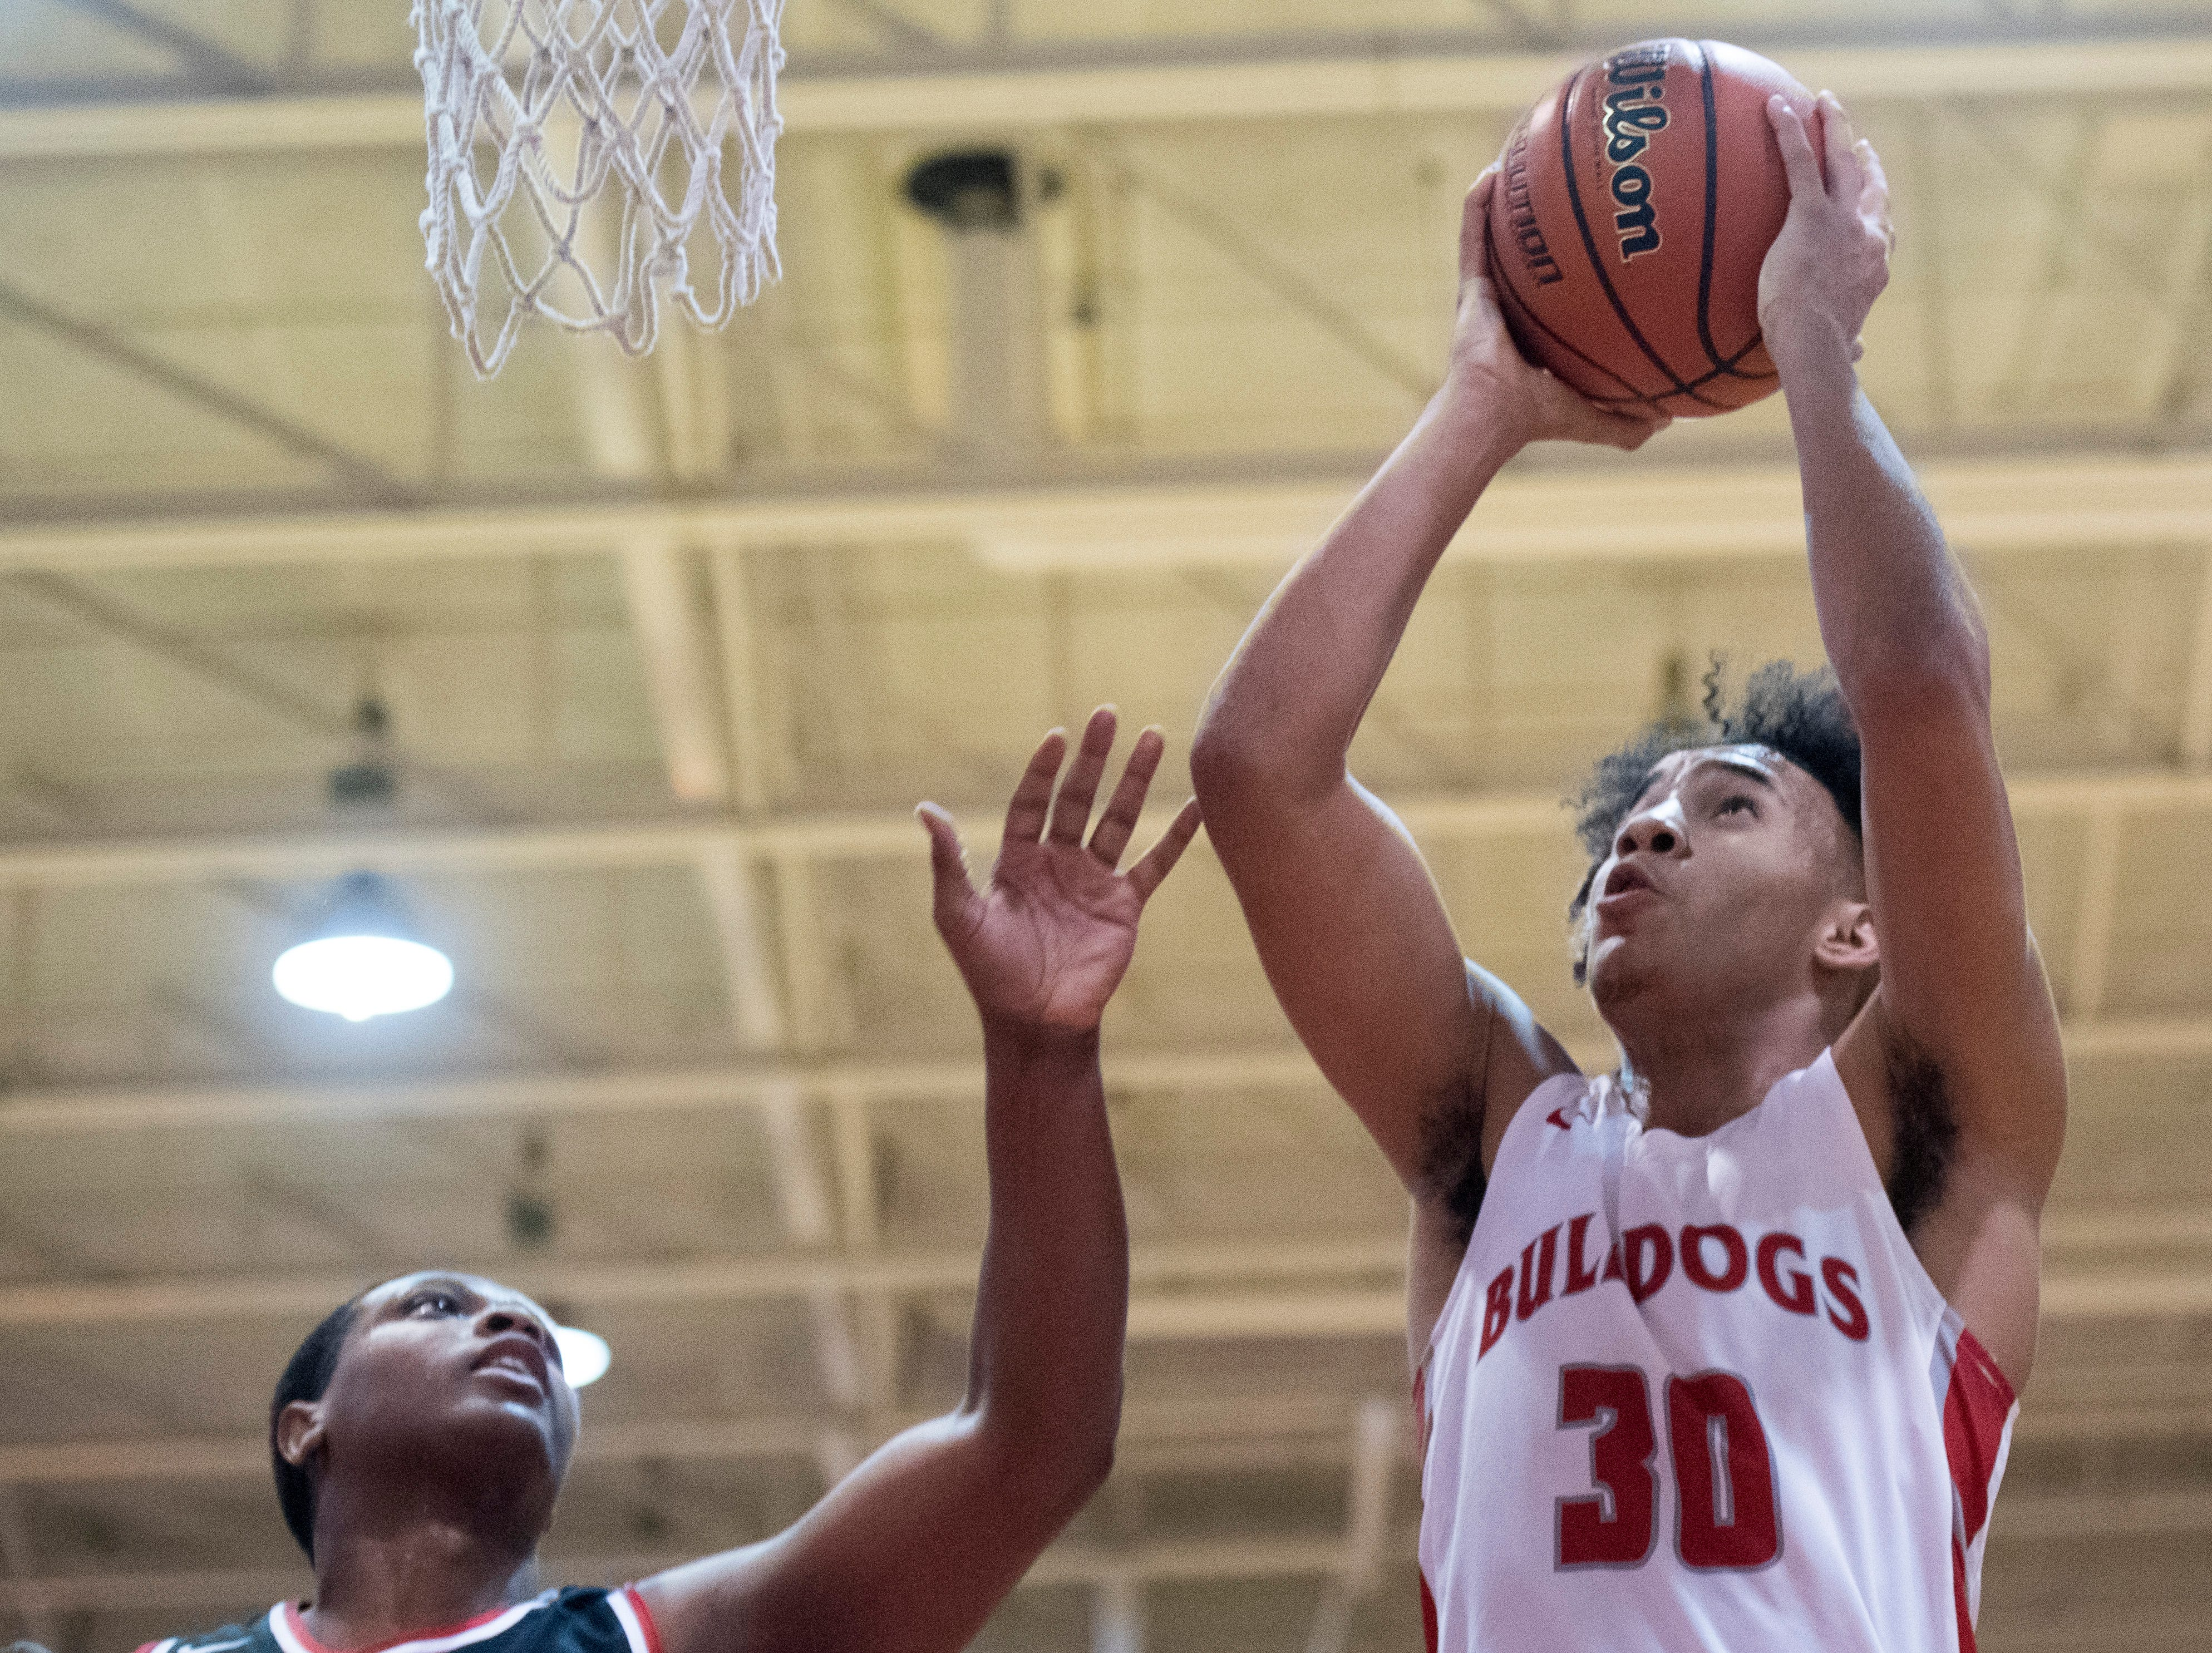 Bosse's Donovan Mcneal (30) takes a shot during the Harrison vs Bosse game at Bosse High School Tuesday, Feb. 12, 2019. The Bosse Bulldogs won 74-56.